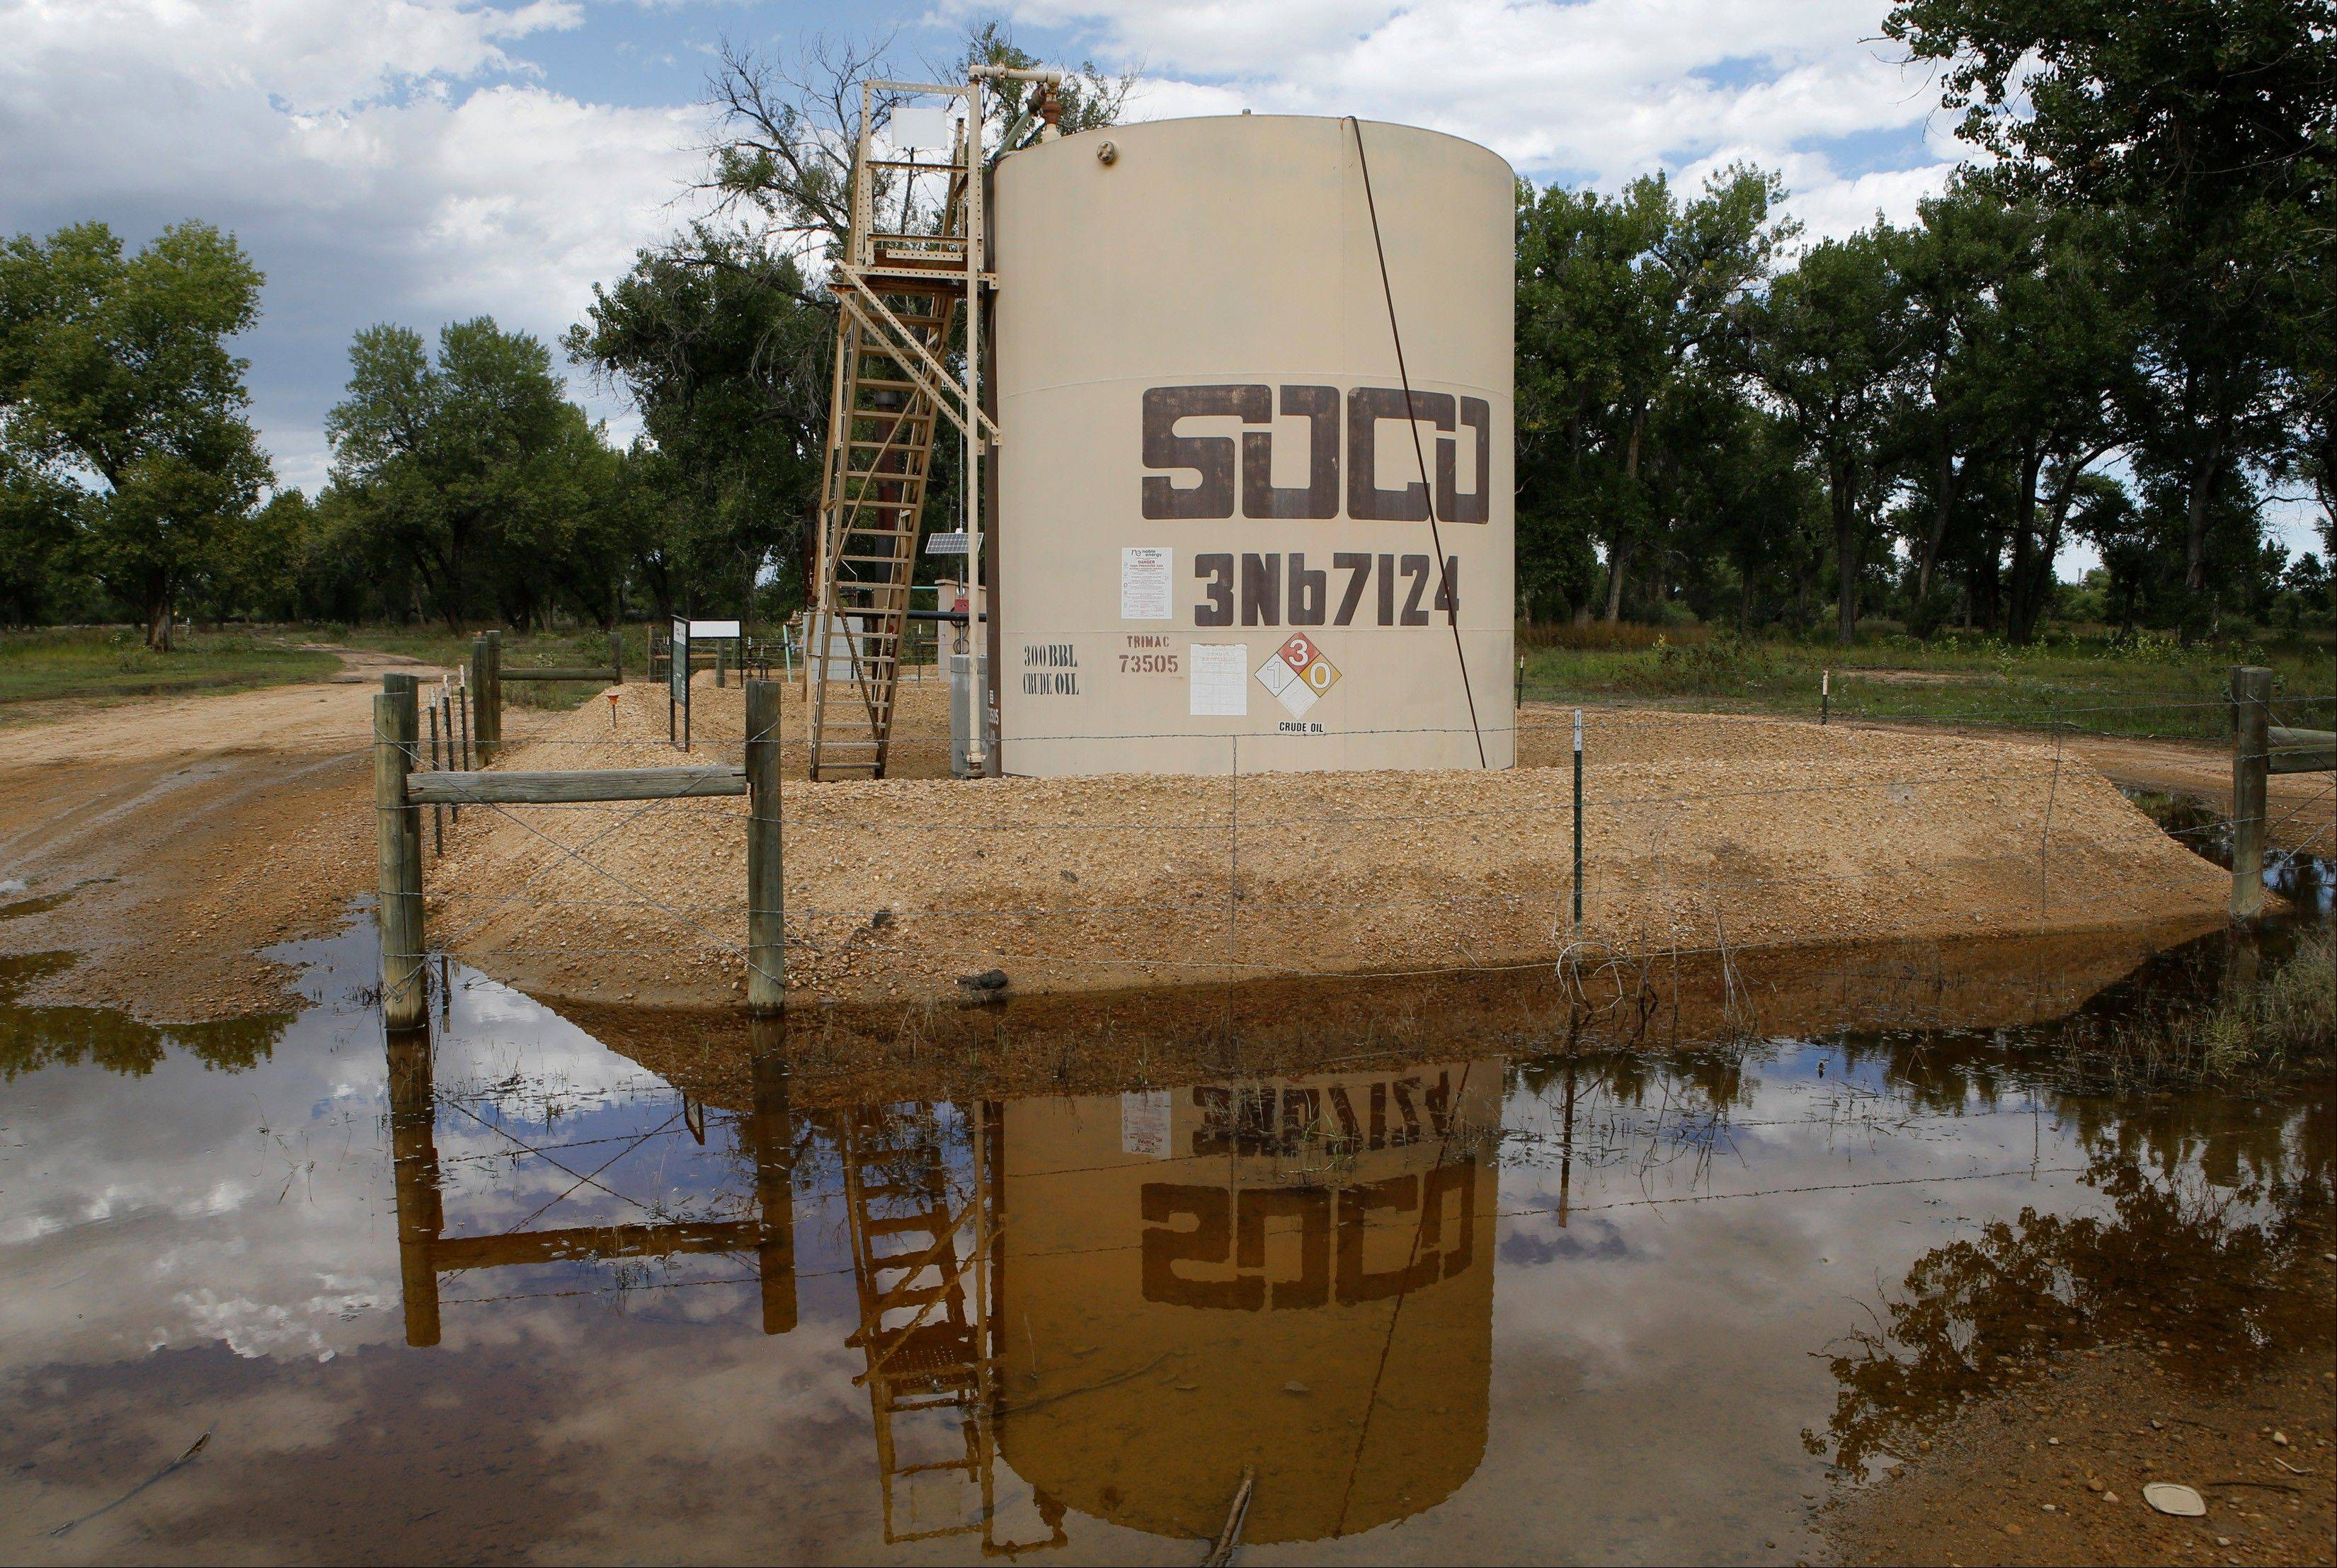 In this Wednesday, Sept. 18, 2013 photo, an oil well pump site is reflected in flood waters near Greeley, Colo. Coloradoís floods shut down hundreds of natural gas and oil wells, spilled oil from one tank and sent inspectors into the field looking for more pollution. Besides the environmental impact, flood damage to roads, railroads and other infrastructure will affect the regionís energy production for months to come.† Analysts warn that images of flooded wellheads will increase public pressure to impose restrictions on drilling techniques such as fracking.